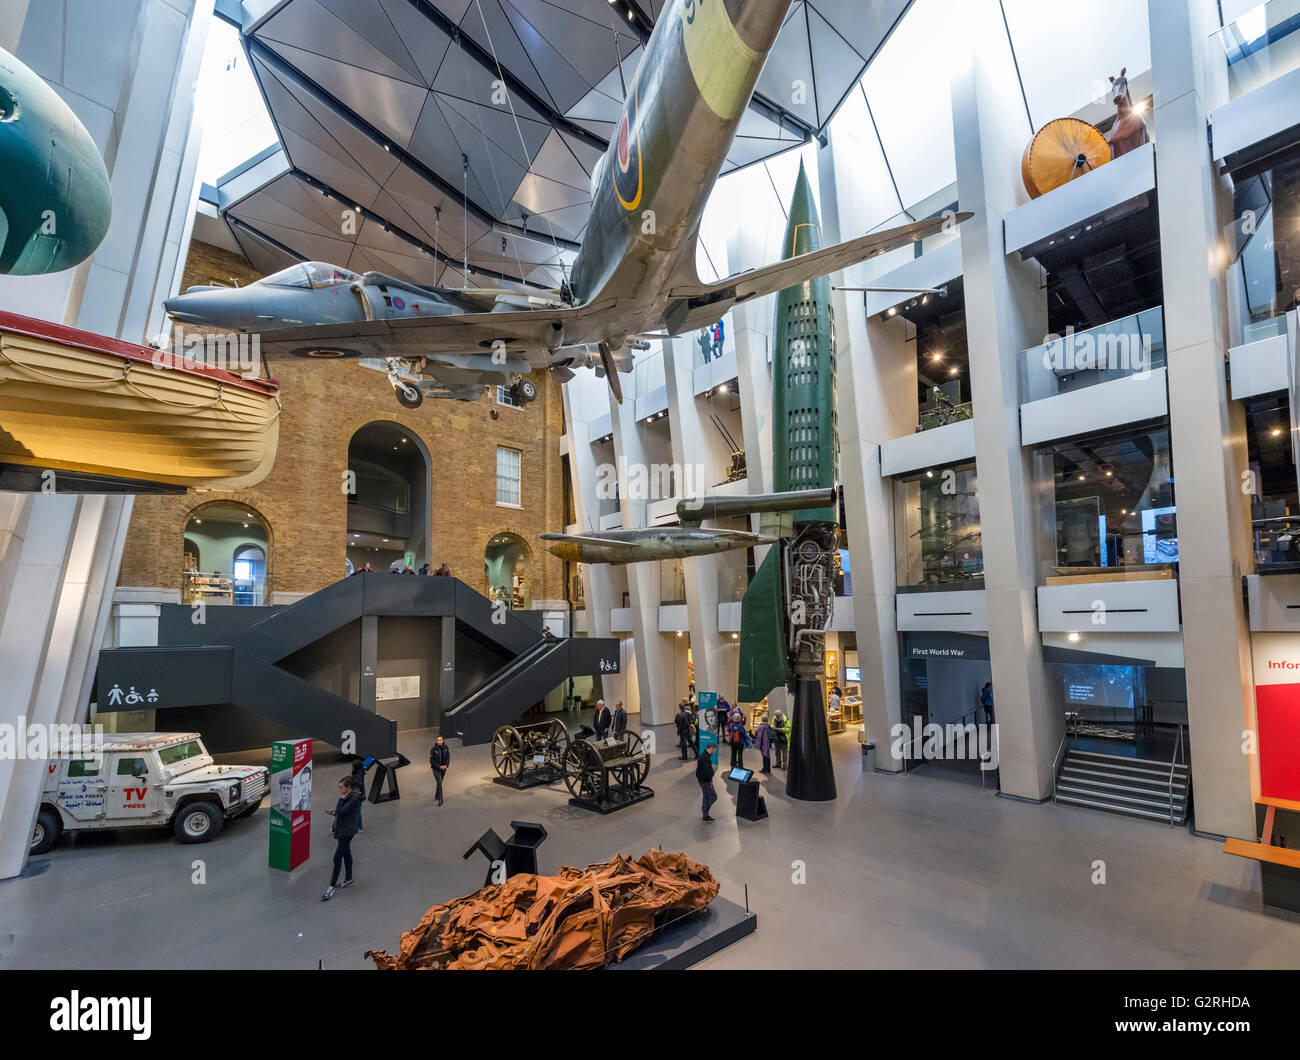 Main exhibition space at the Imperial War Museum, Lambeth, London, England, UK - Stock Image